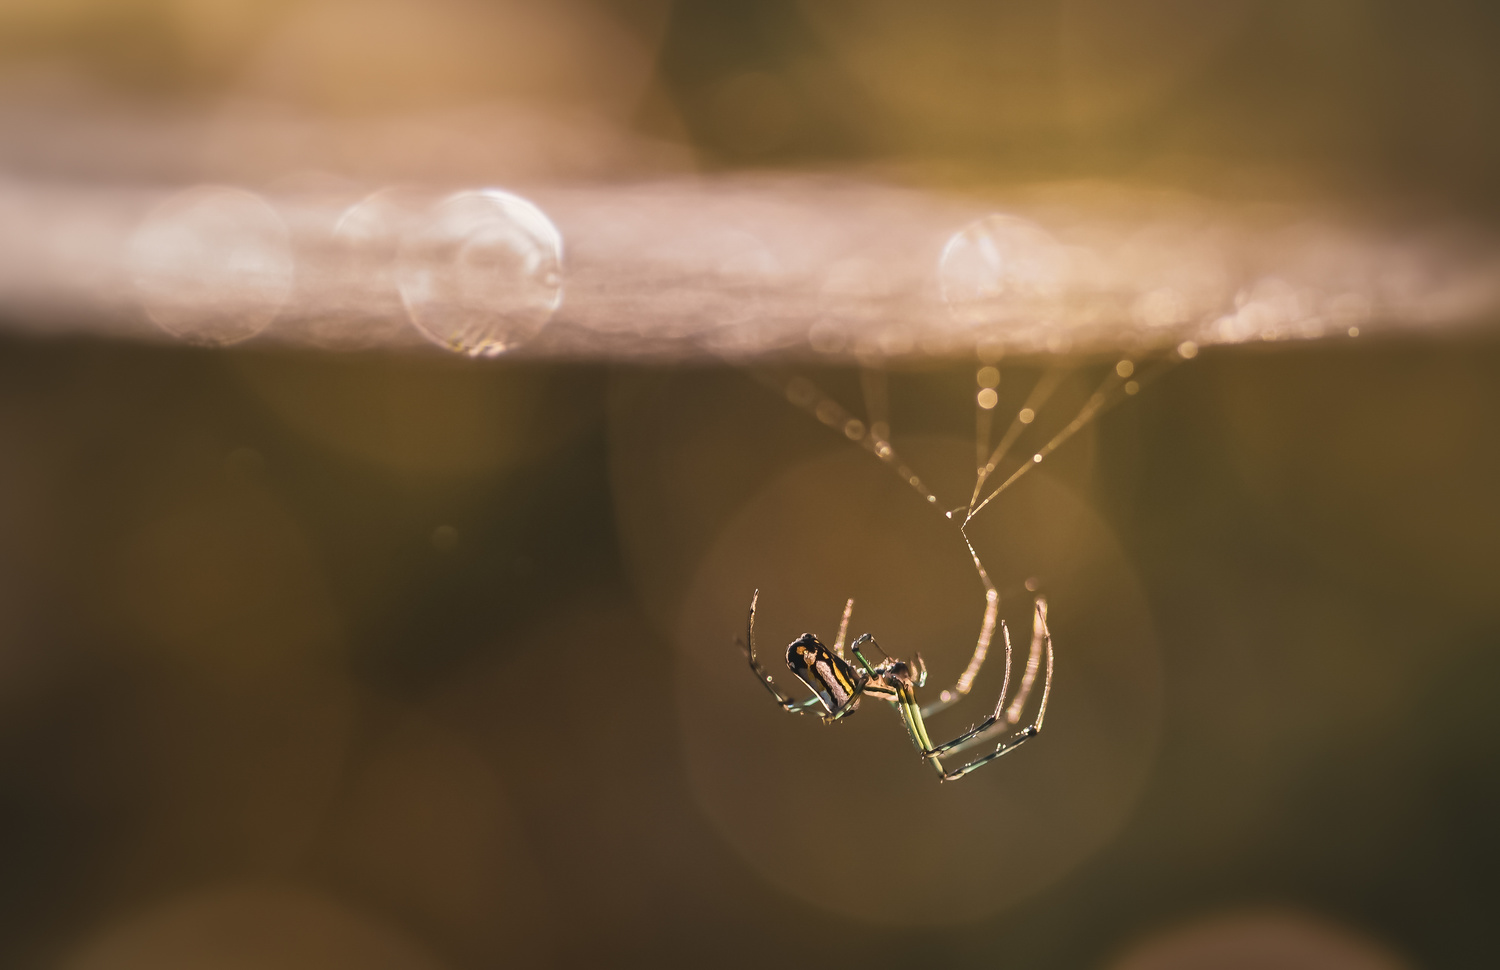 Hanging by a thread by Atul Saluja